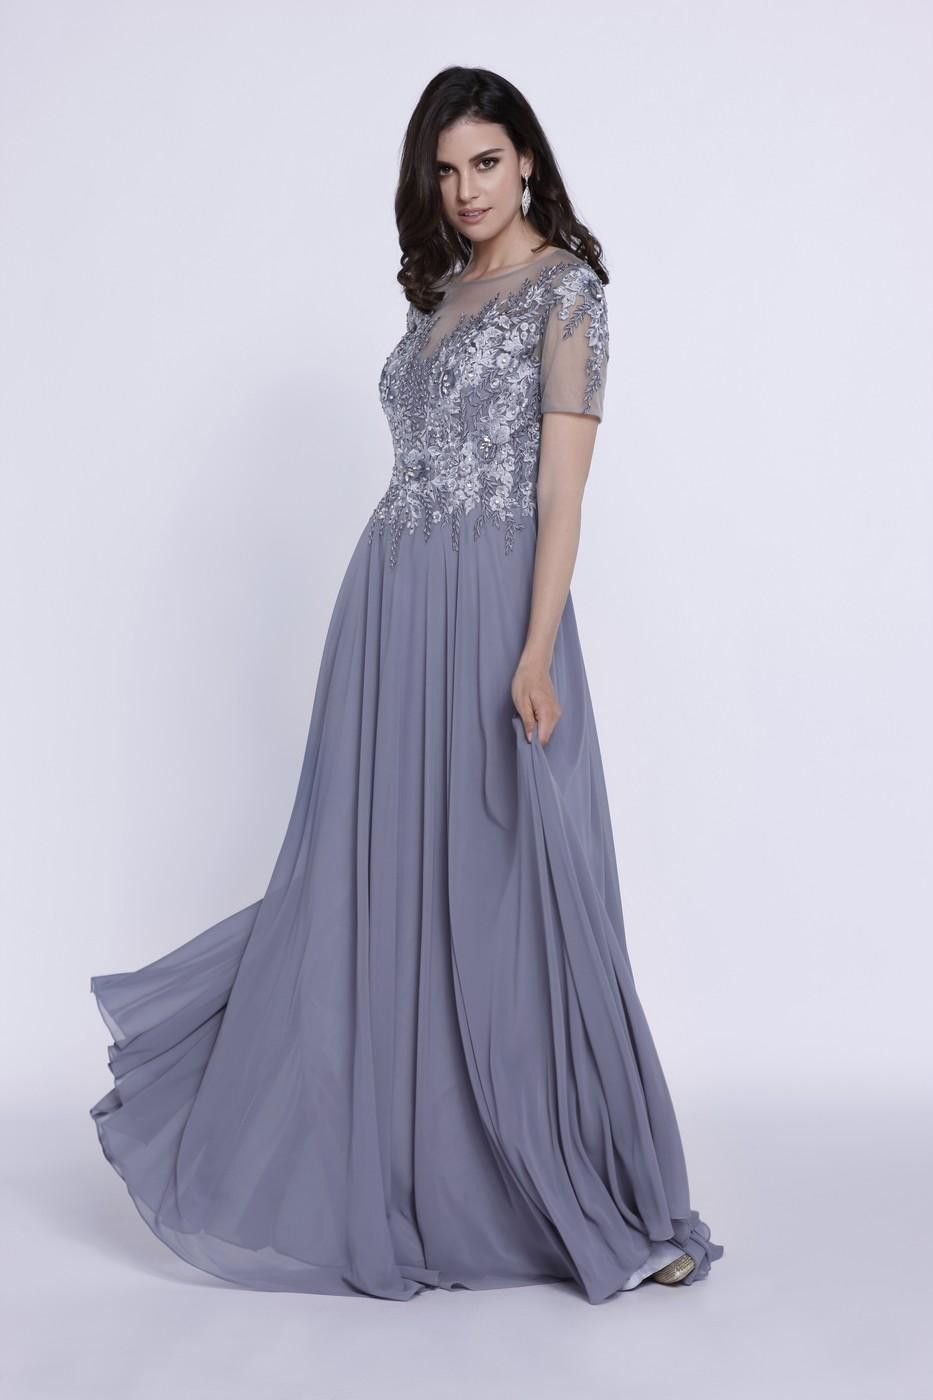 This simply gorgeous long mother of the bride dress features an